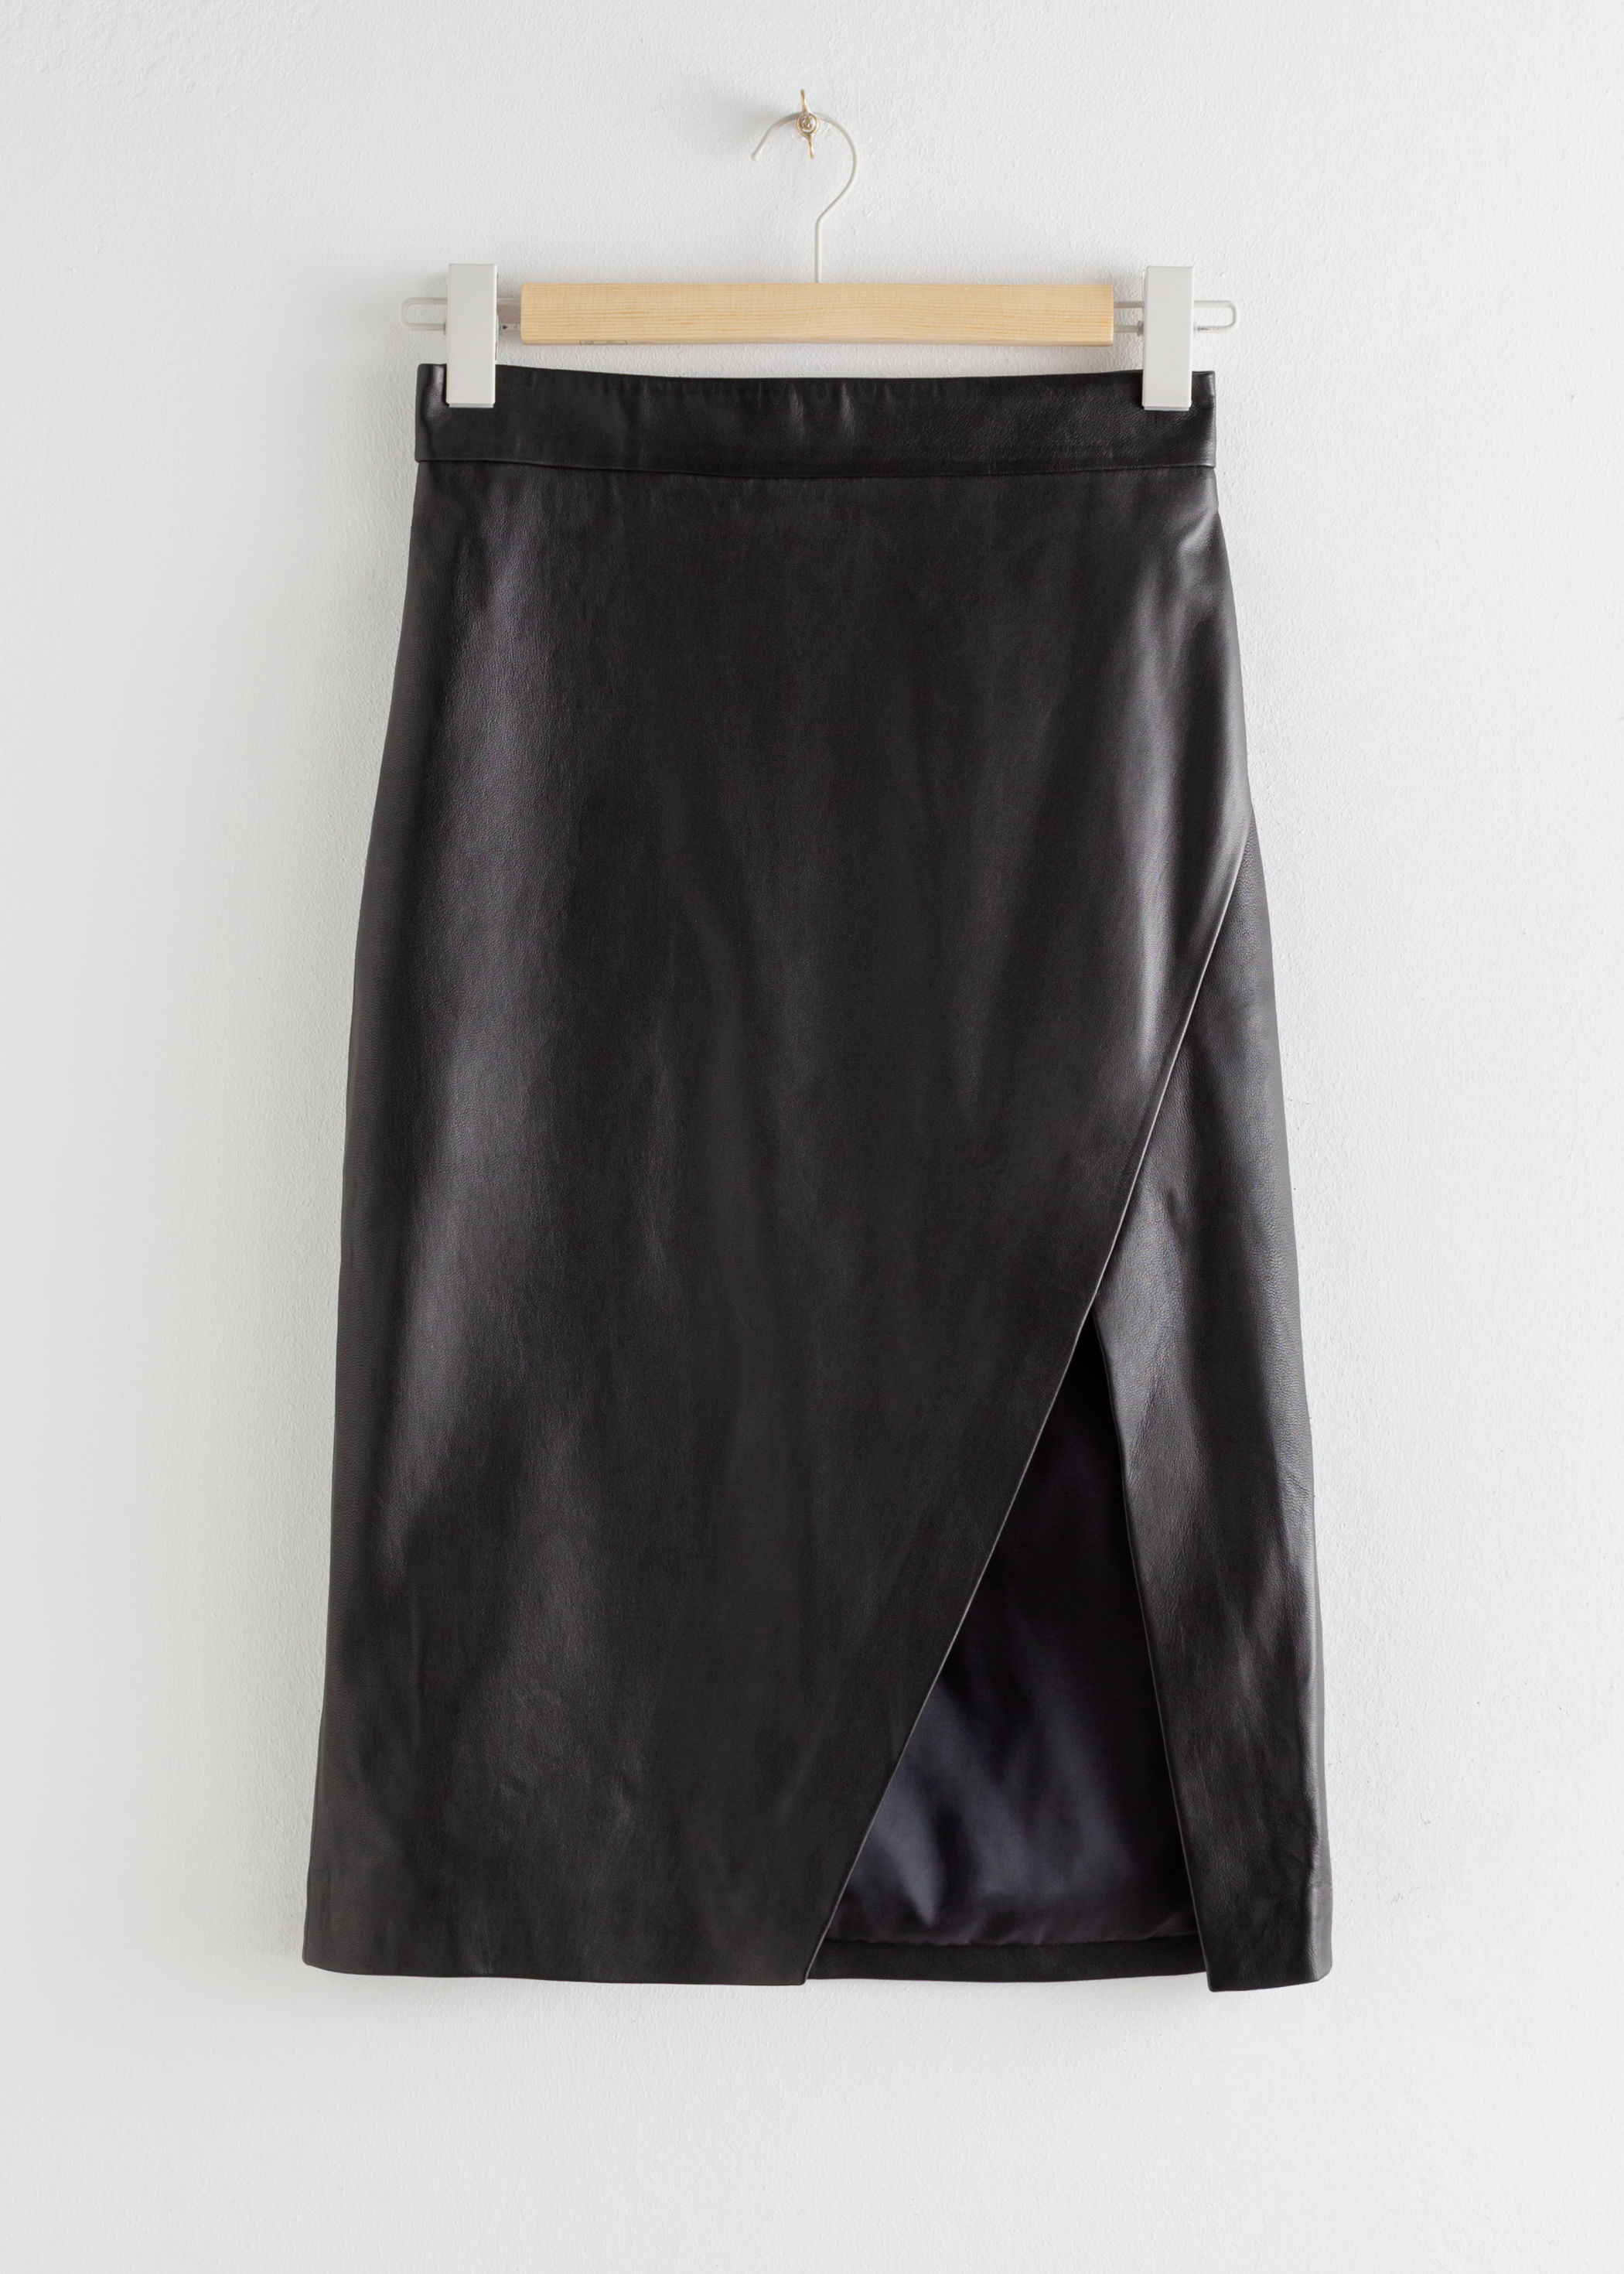 앤 아더 스토리즈 비대칭 펜슬 스커트 & OTHER STORIES Leather Asymmetric Pencil Skirt,Black